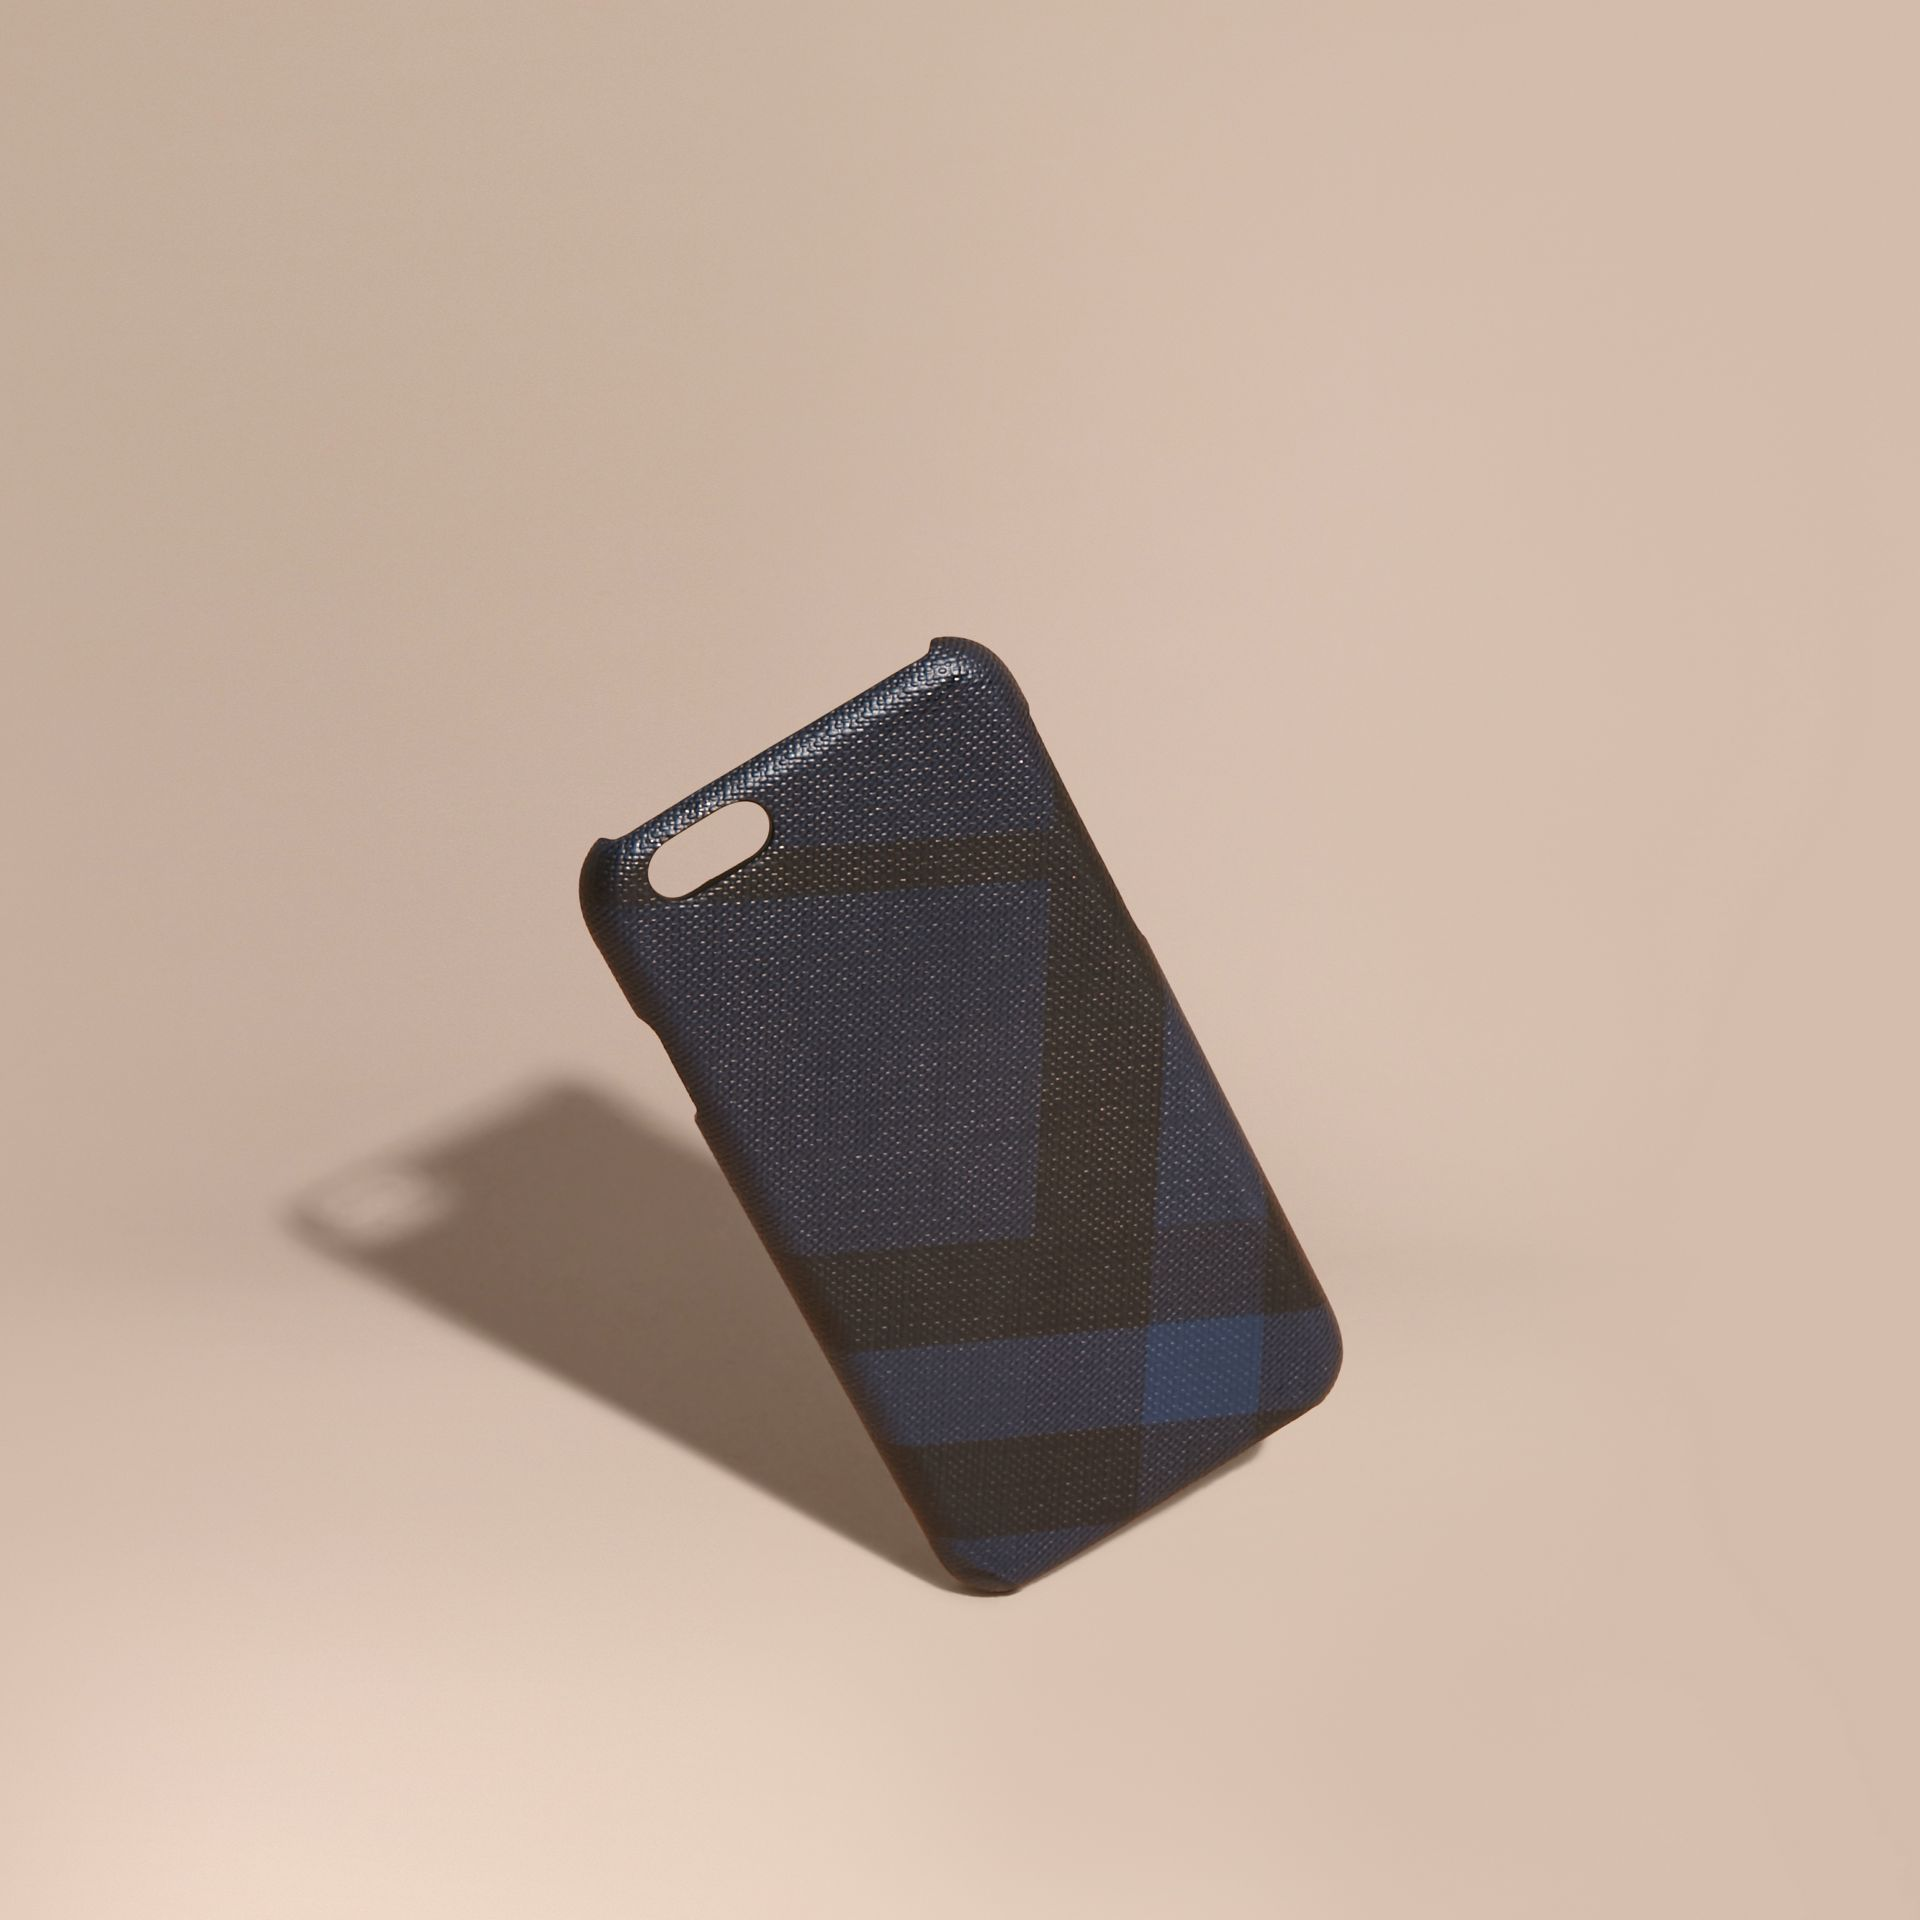 Custodia per iPhone 7 con motivo London check (Navy/nero) | Burberry - immagine della galleria 1